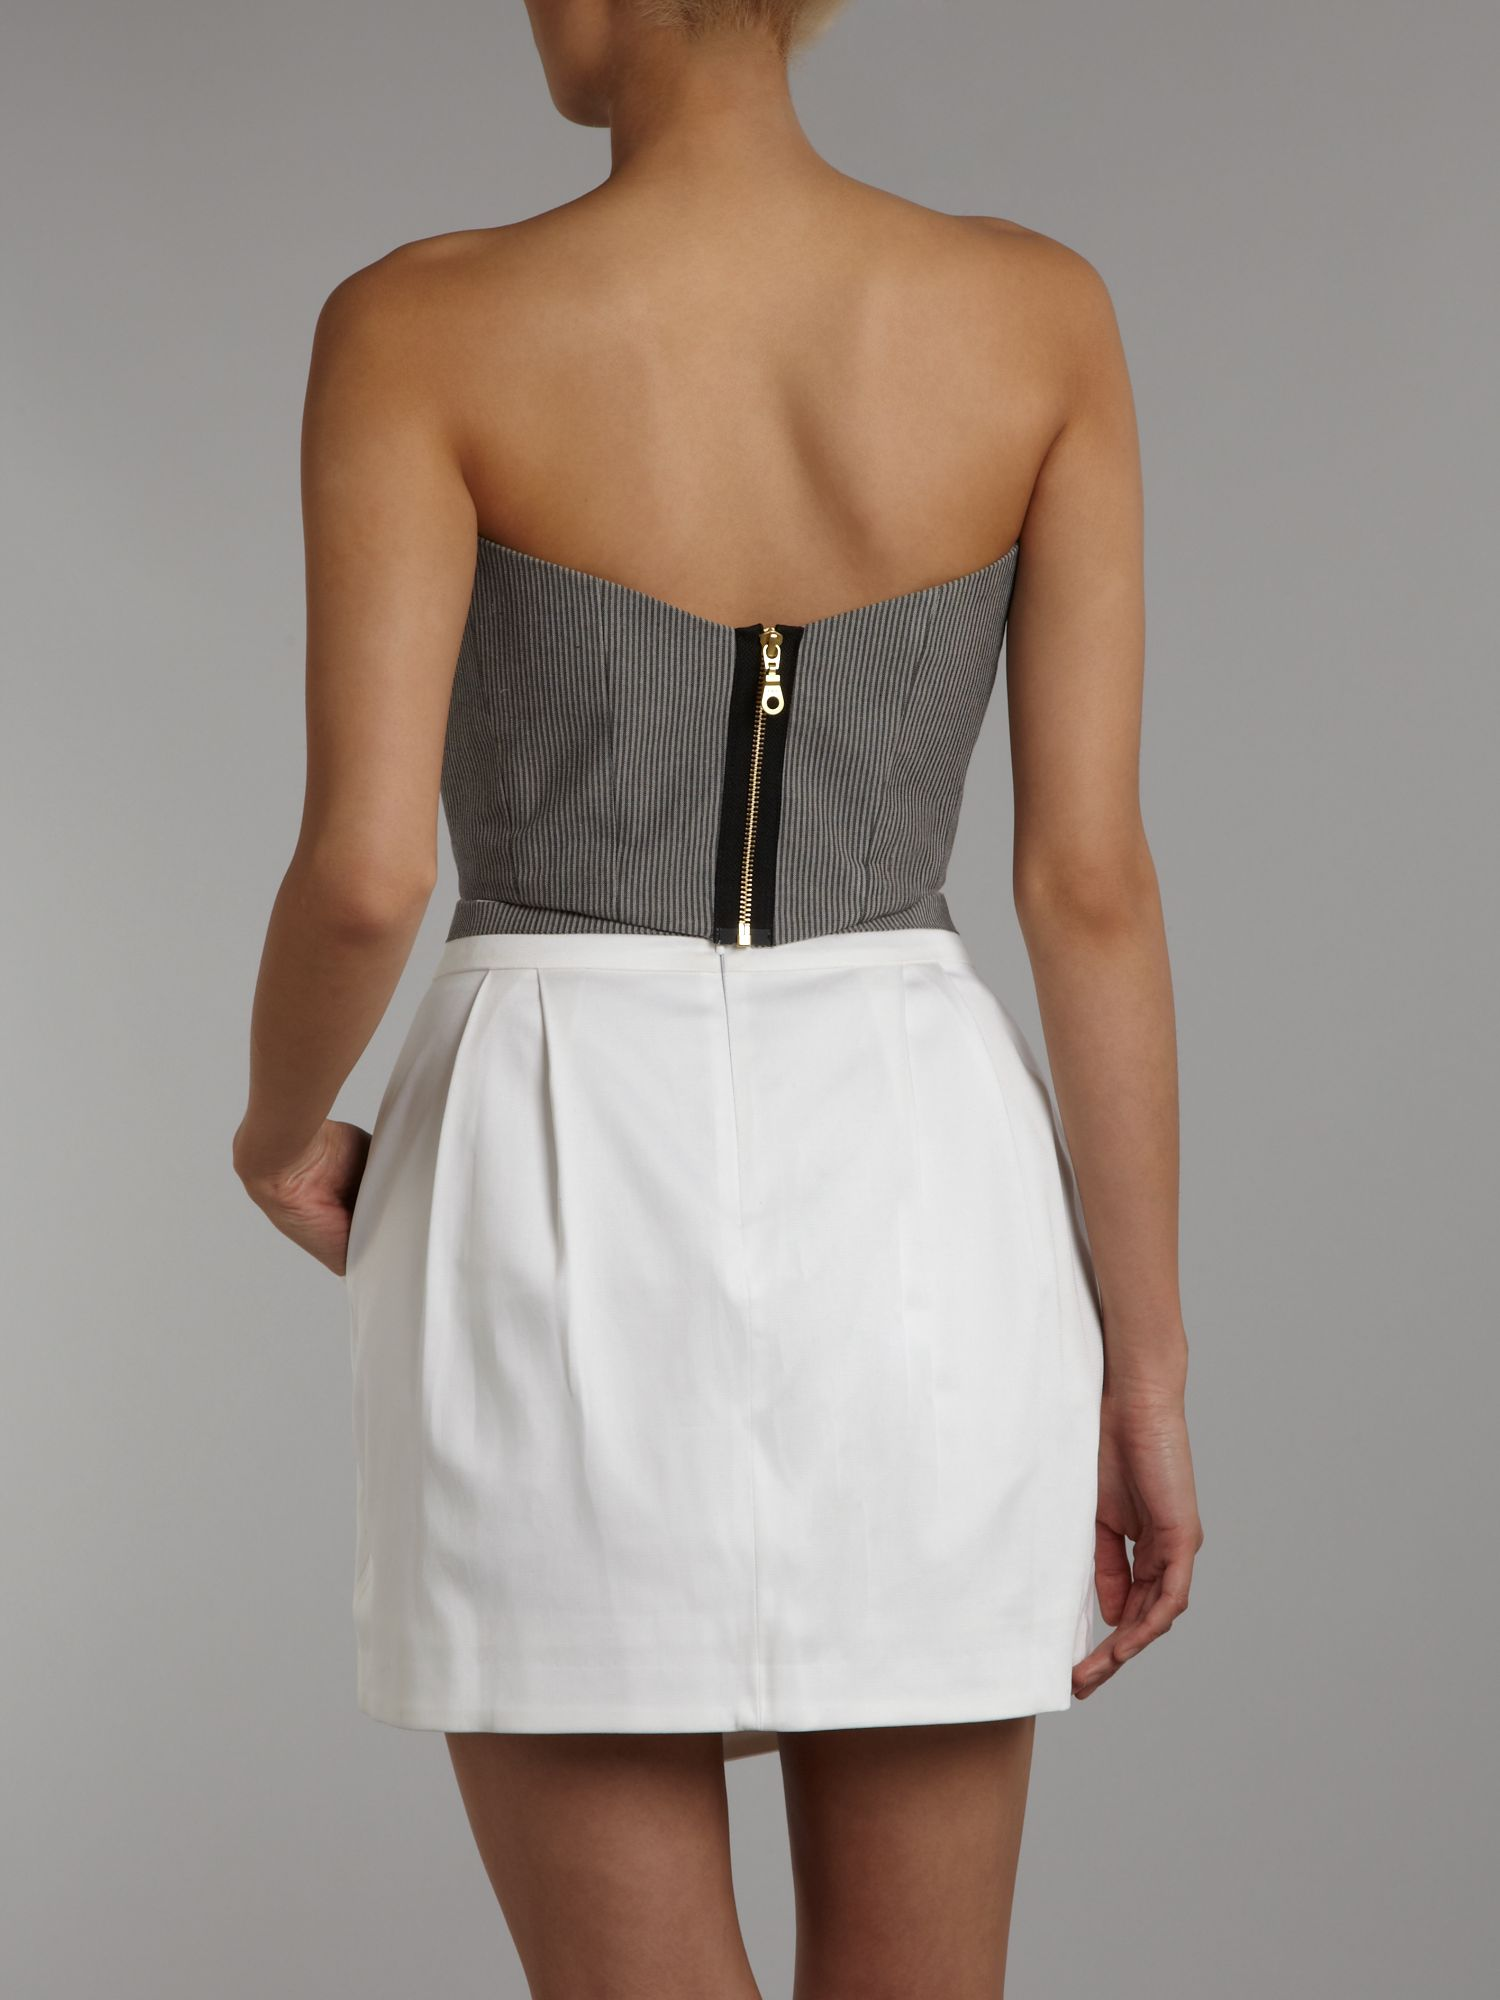 Hedonia collette cropped bustier top